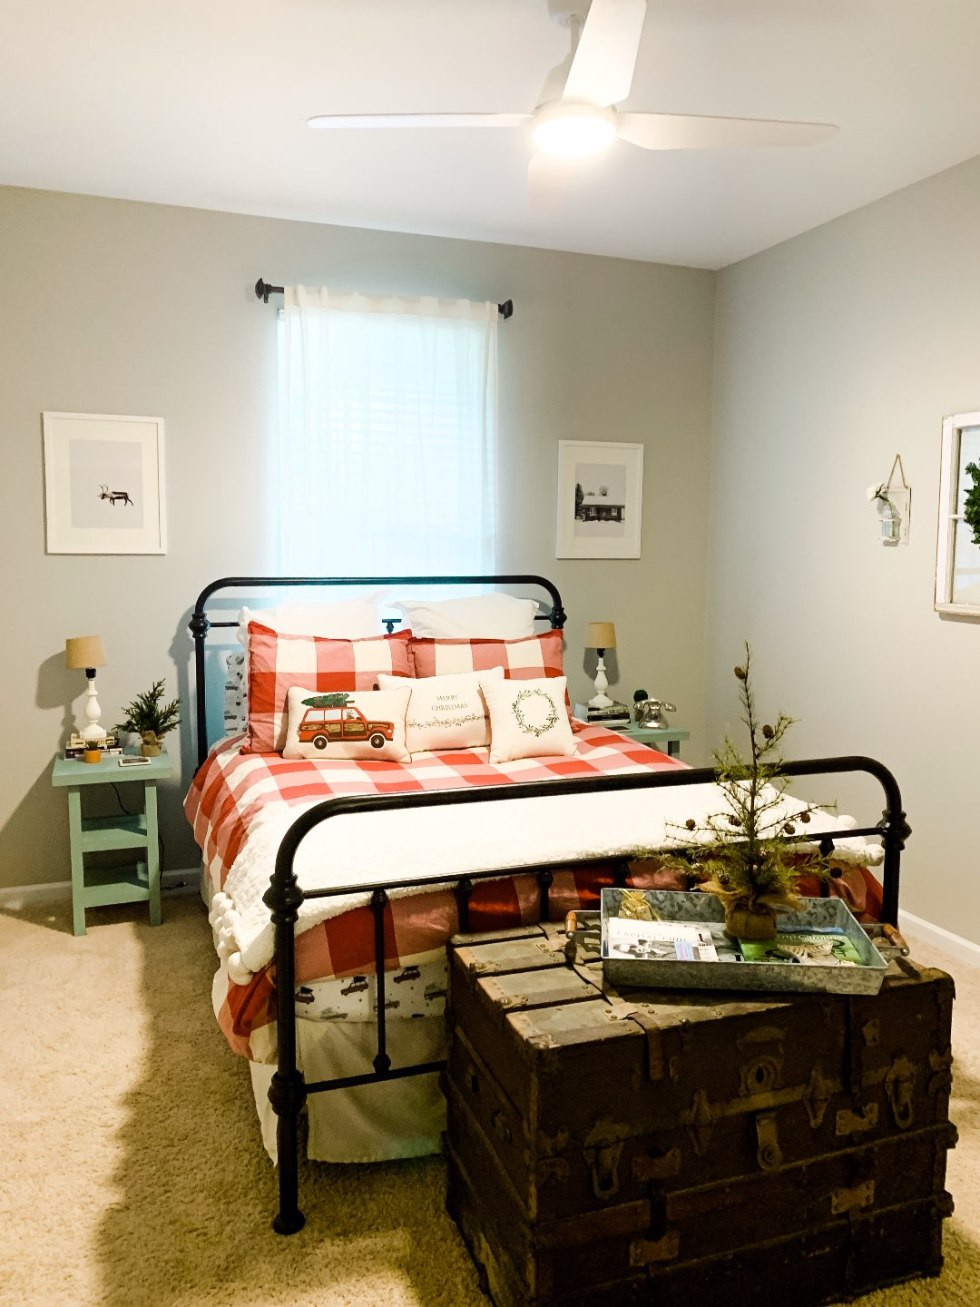 Holiday Home Decor Tour - I'm Fixin' To - @mbg0112 | Holiday Home Decor Tour by popular North Carolina life and style blog, I'm Fixin' To: image of a guest bedroom with a Pottery Barn Bryce Buffalo Check Cotton Duvet Cover & Shams, Target Inspire Q Tilden Standard Metal Bed, Etsy Christmas Wall Art, Pottery Barn Cozy Pom Pom Throw, and Amazon Golden State Art.